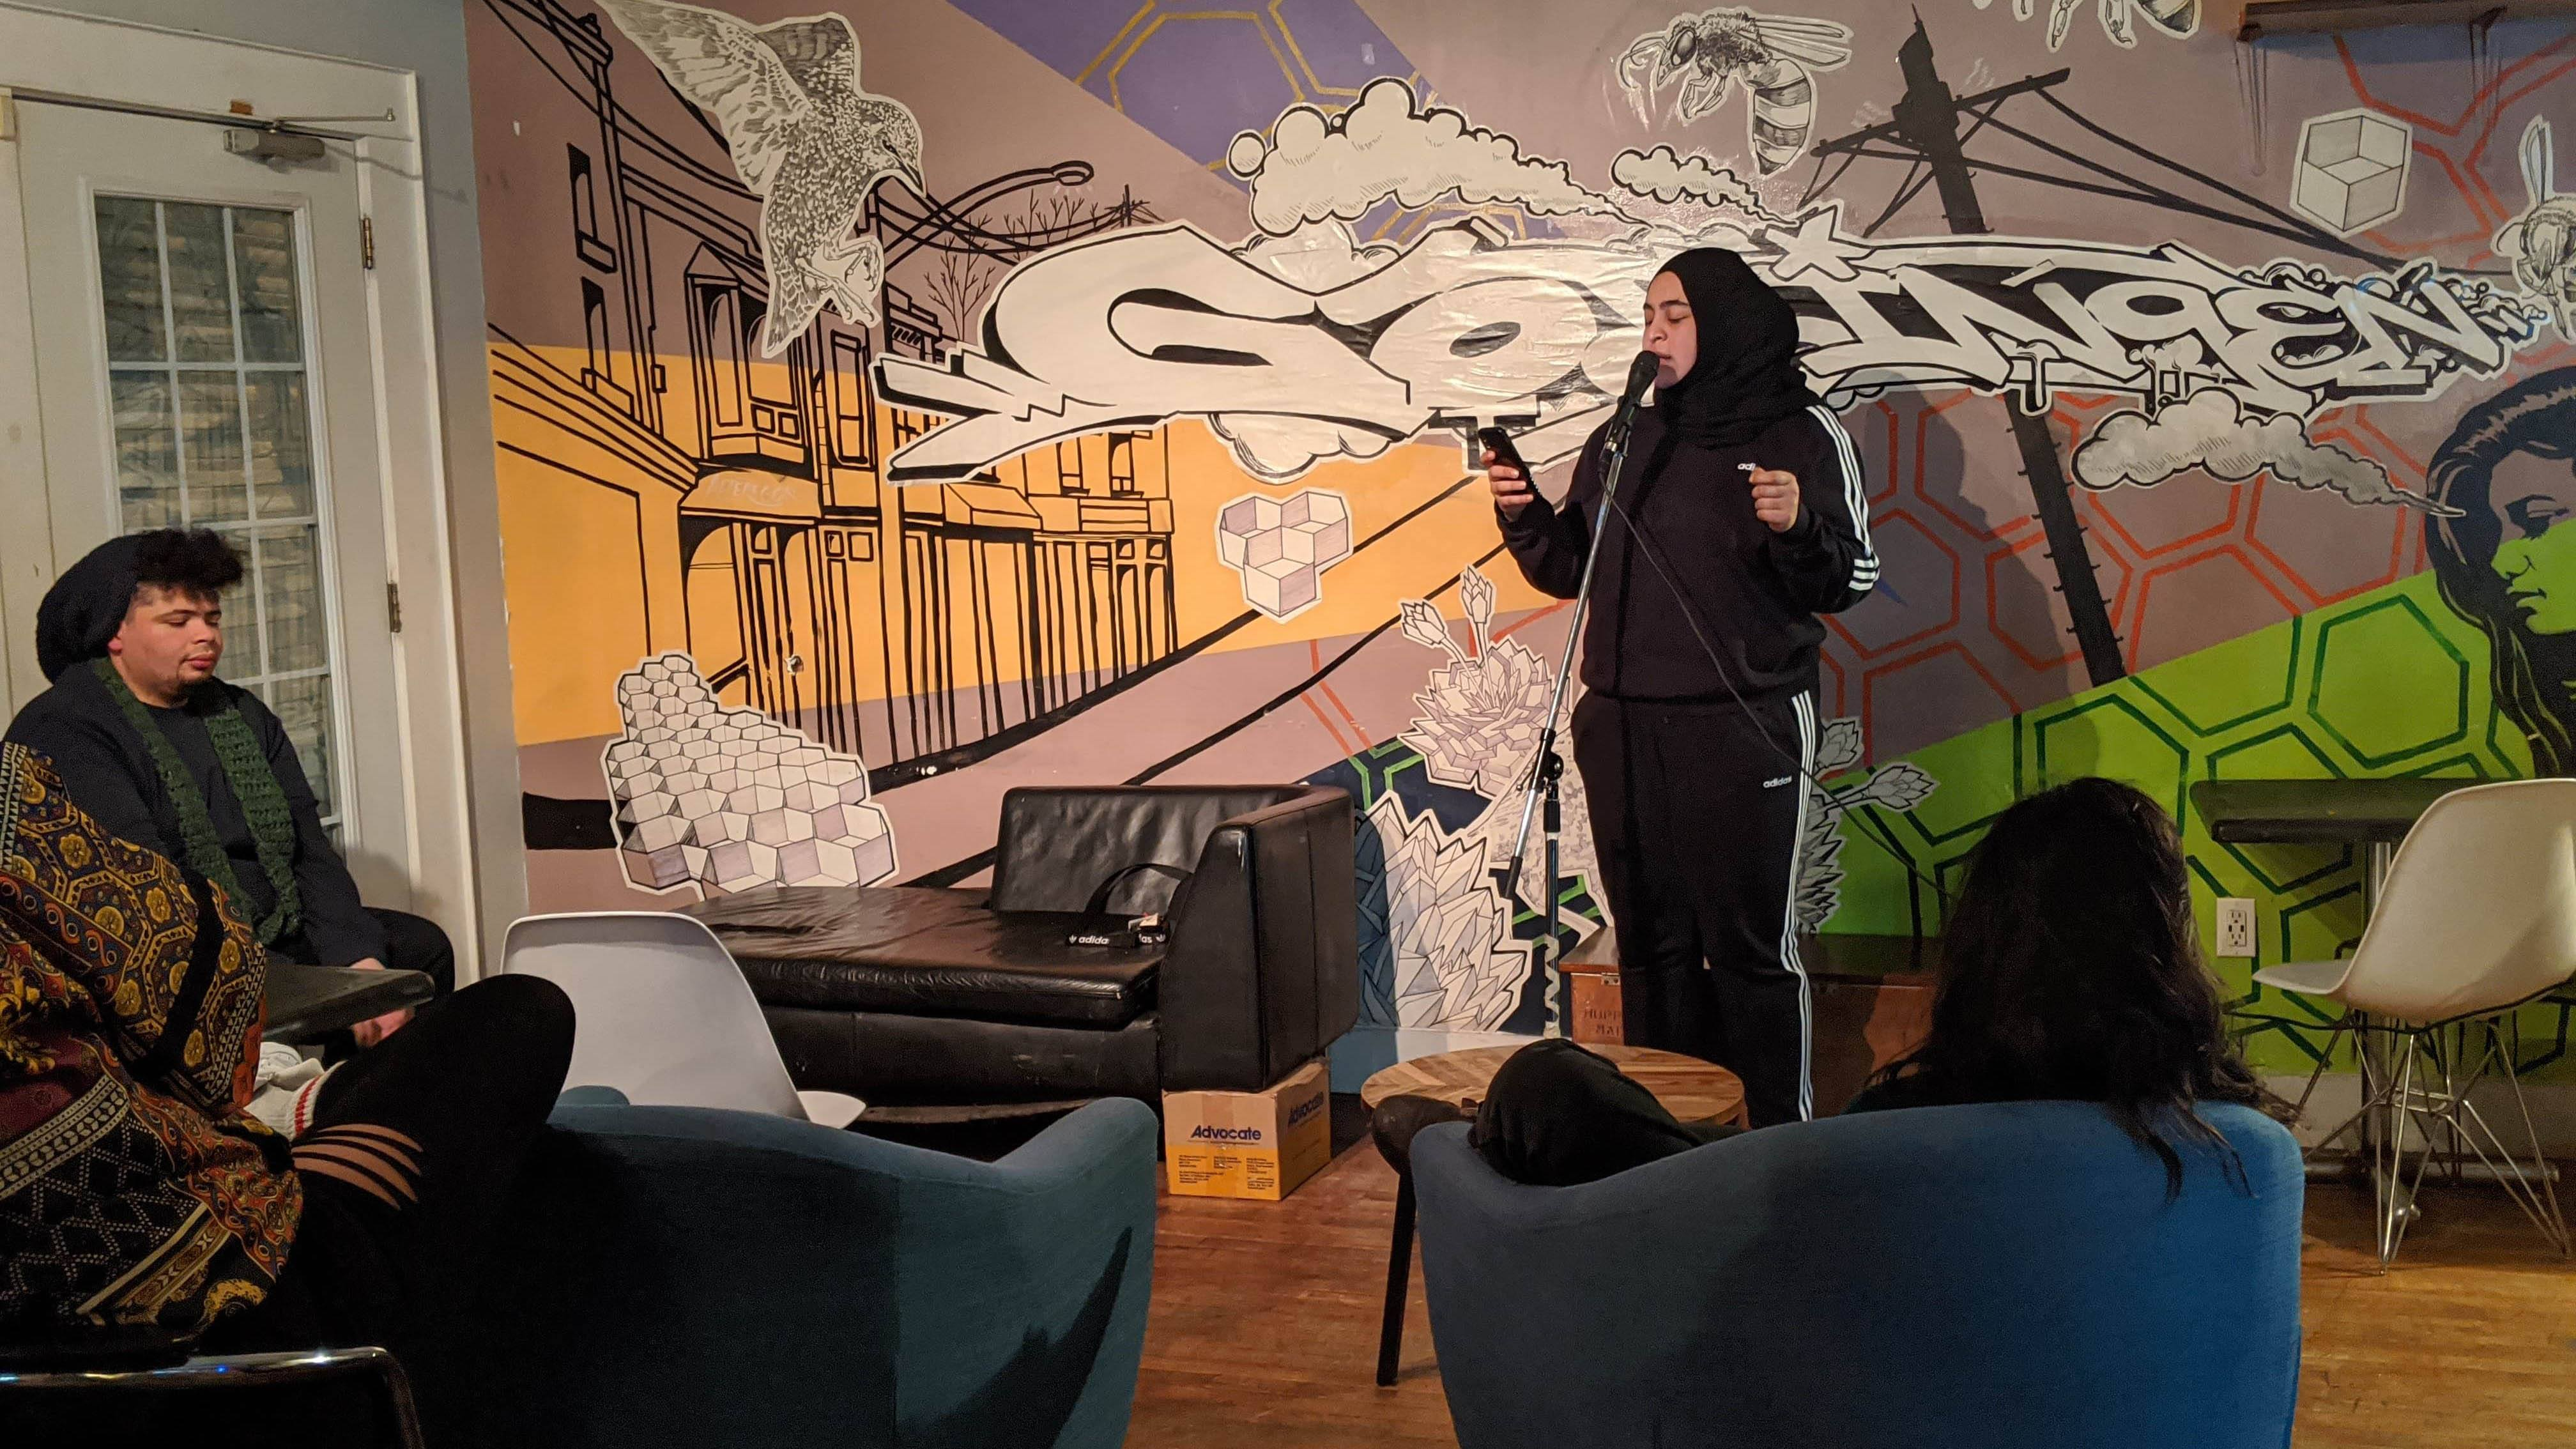 Masuma Khan performs at the BIPOC 2020 Vision event she co-organized with Andre Fenton.